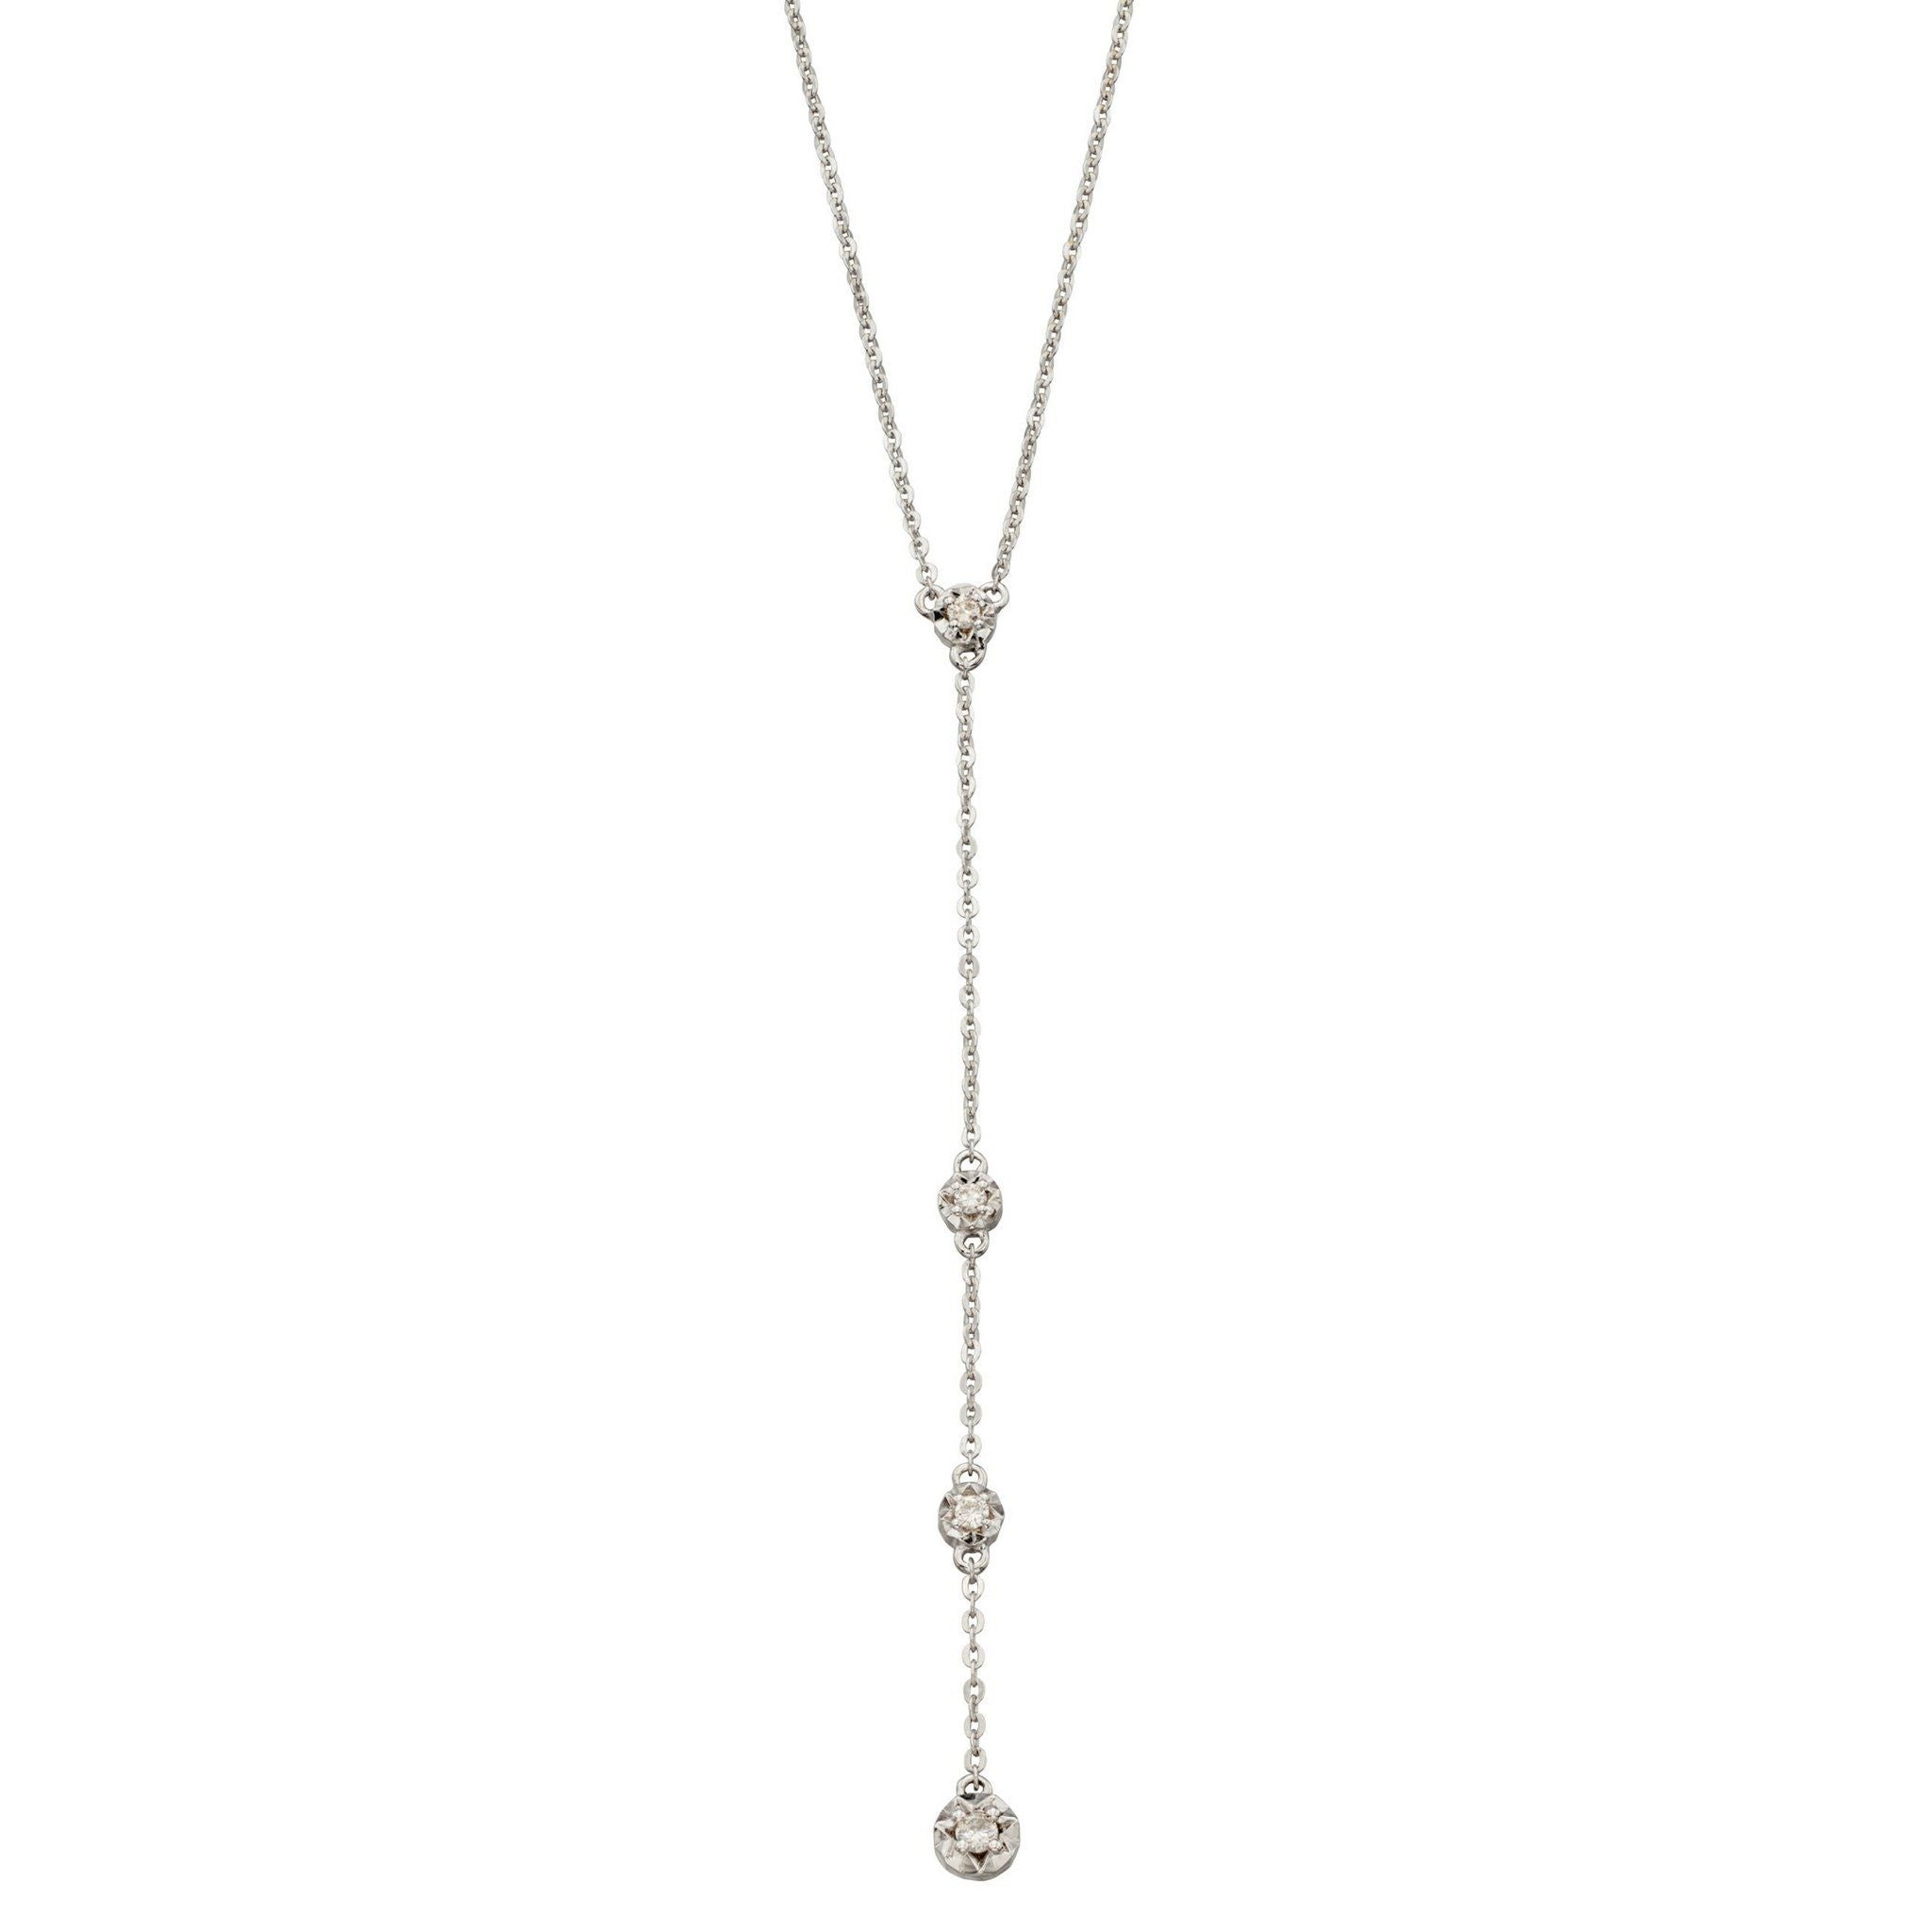 9ct White Gold & Diamond Necklace